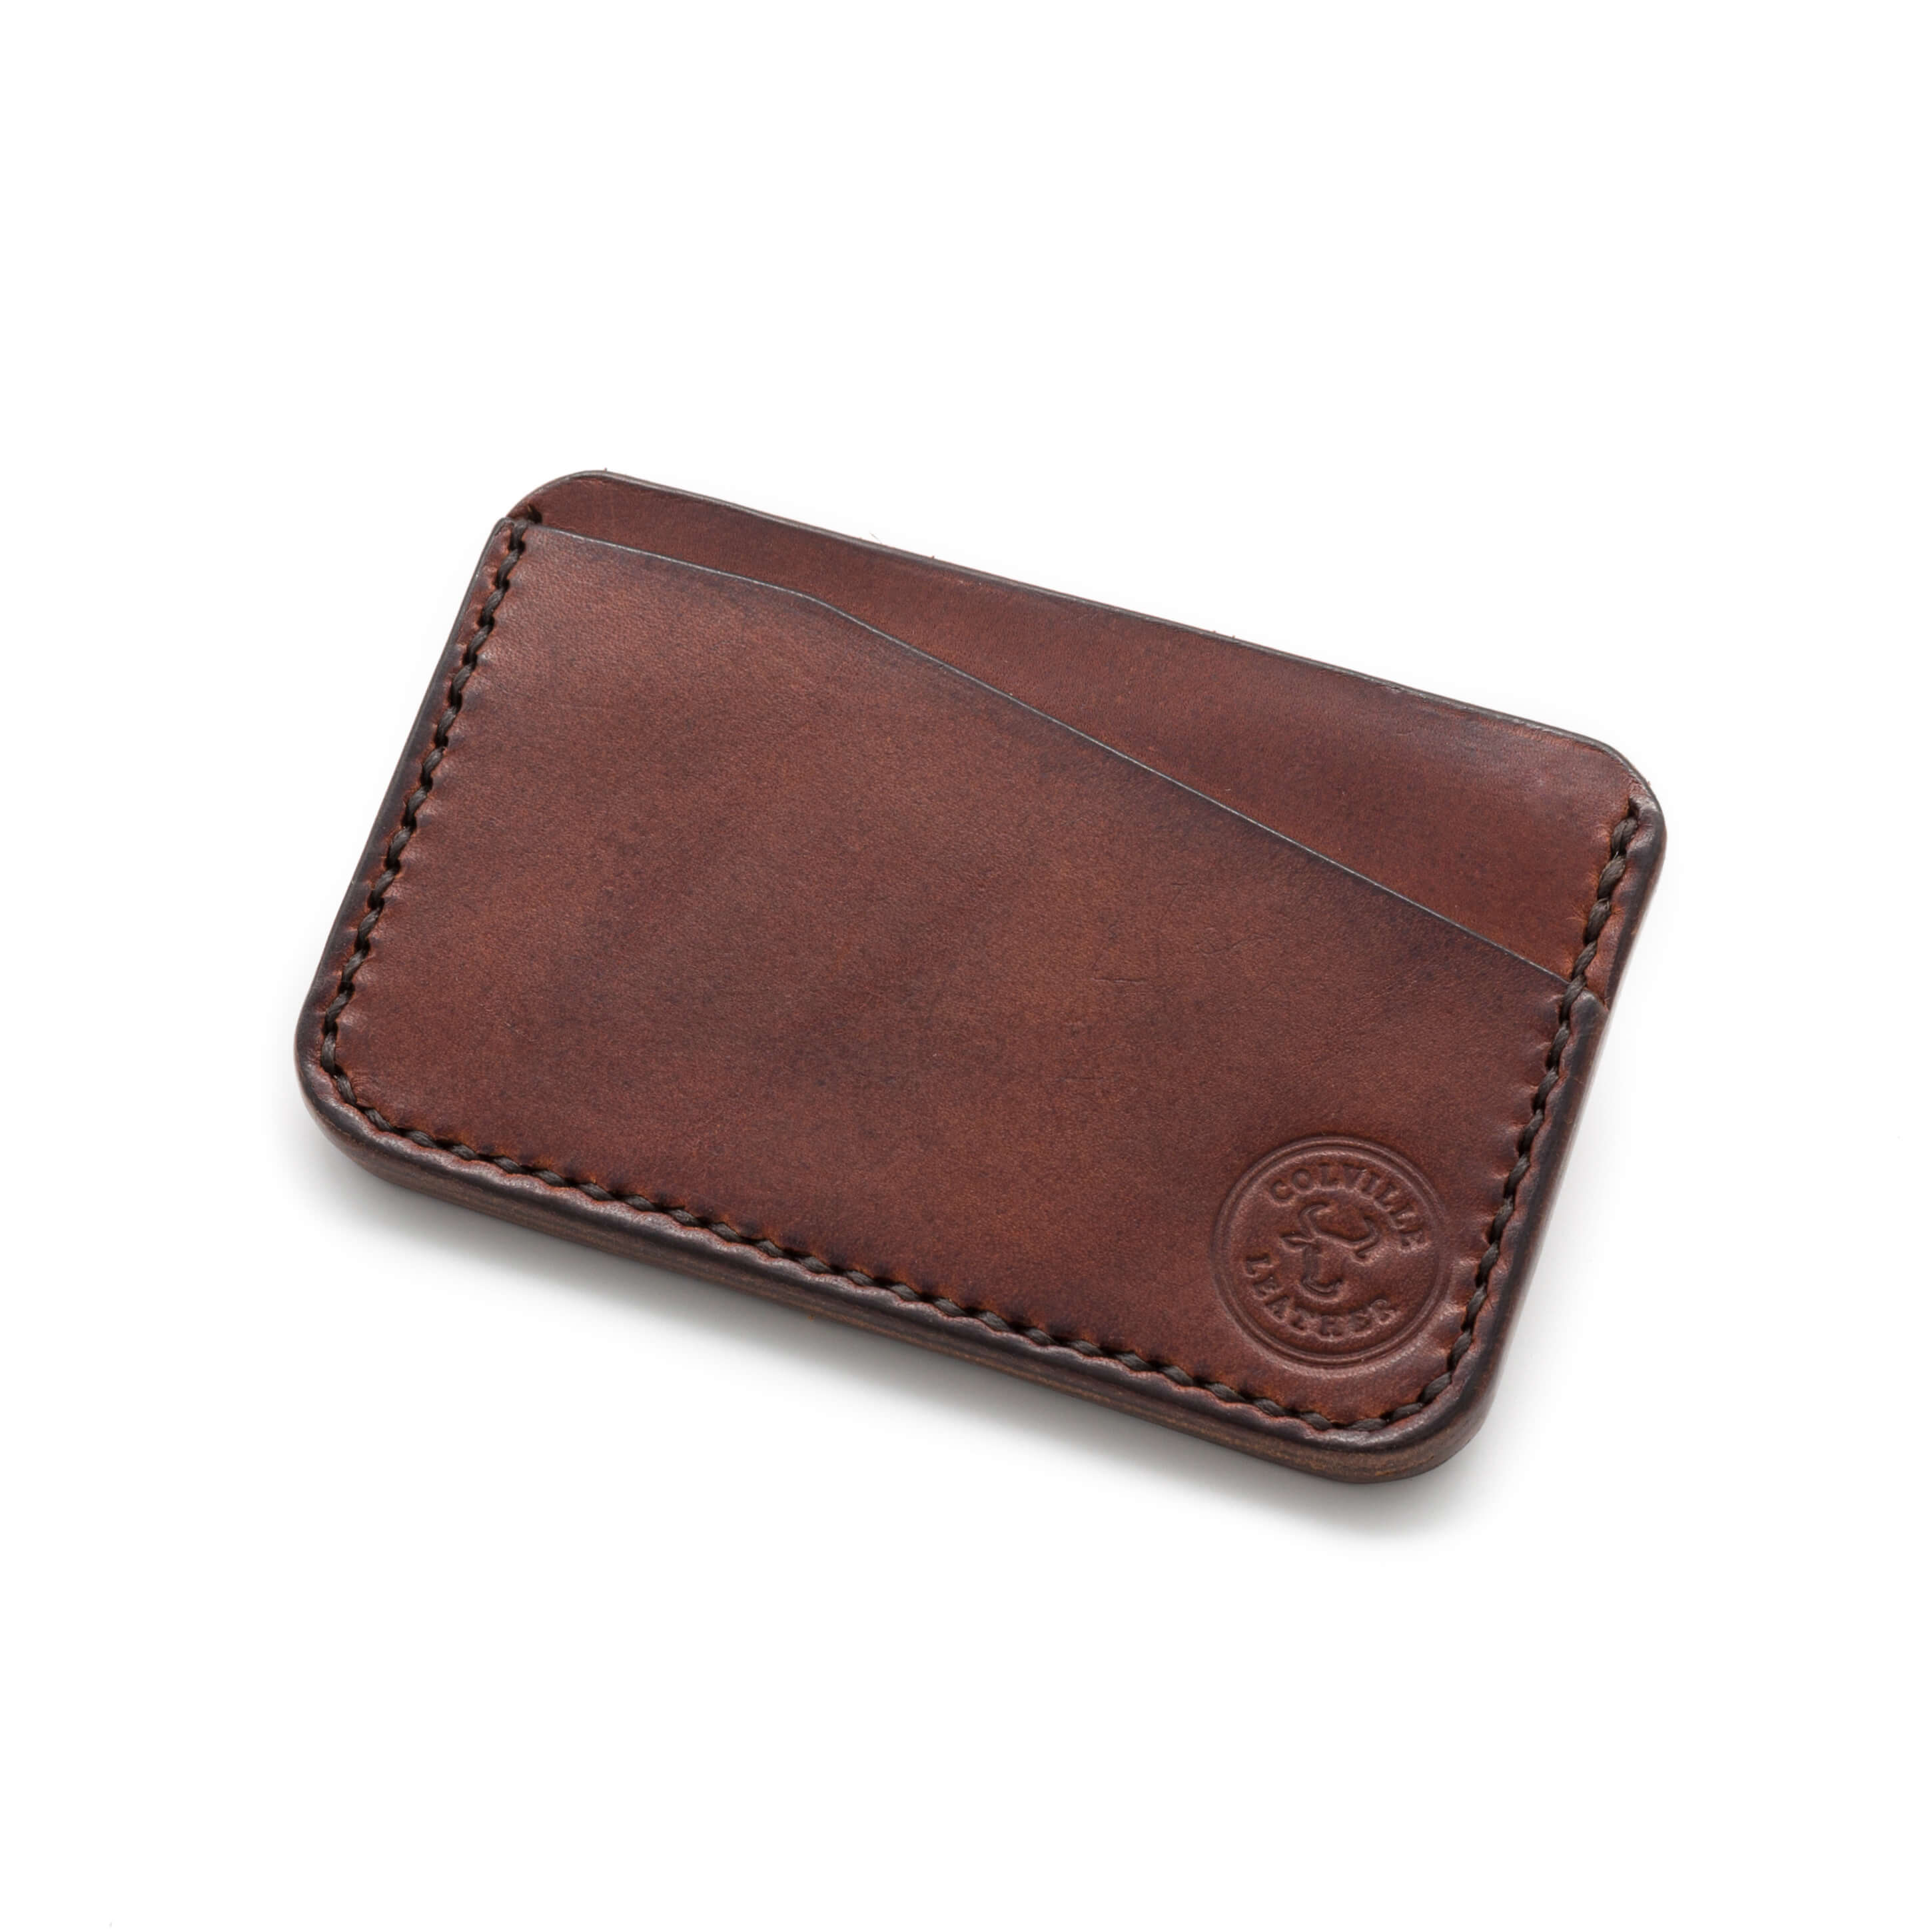 Handmade card wallet in Chestnut